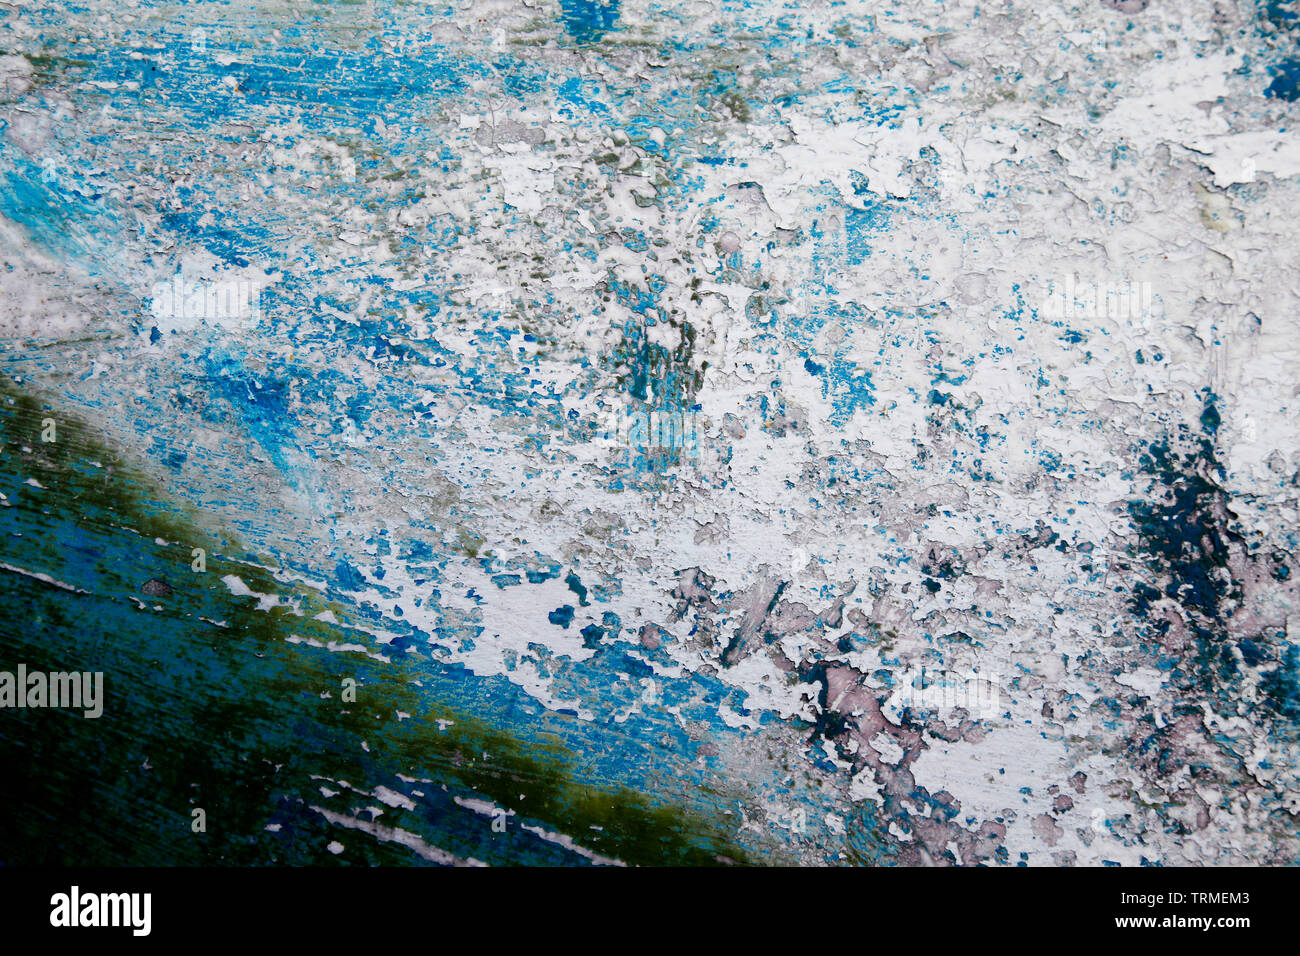 Boat Hull, Keel, Abstract, Paint, Weathered, Scratched, Coast, Vessel, Dirt, Beach, Southend, Essex © Clarissa Debenham / Alamy - Stock Image